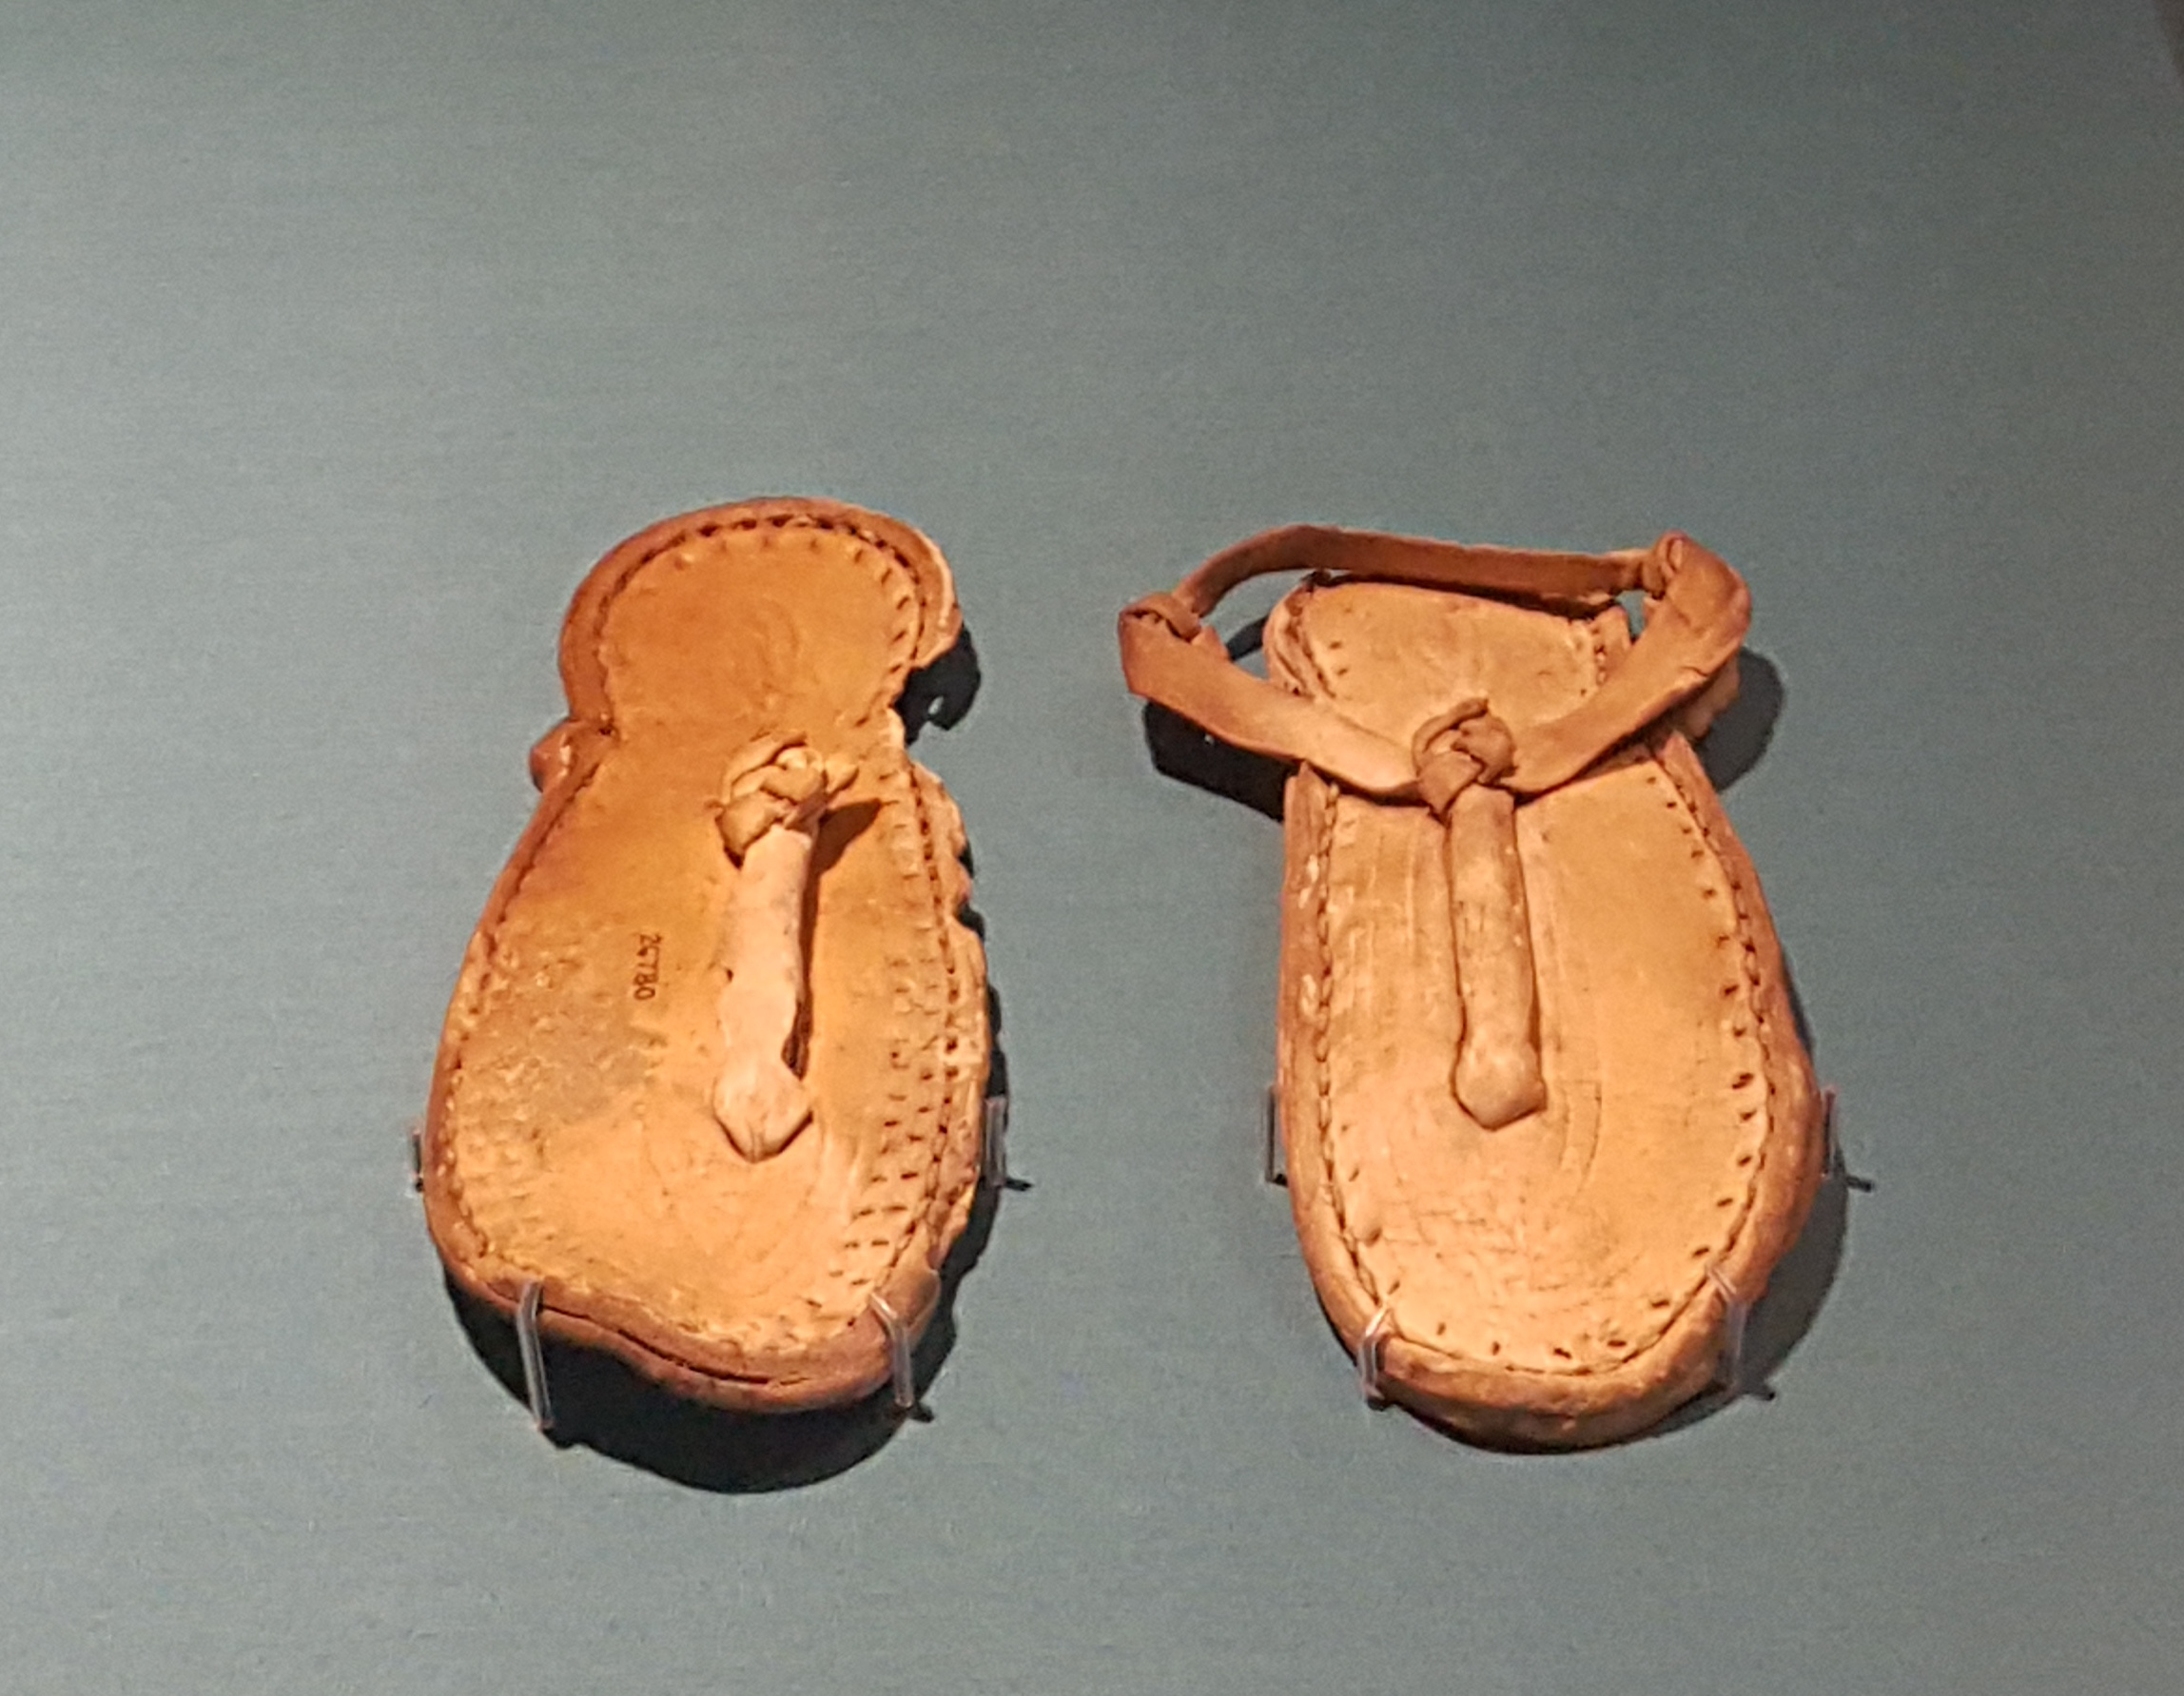 9cc48e655556 Egyptian Child s Leather Sandals (Illustration) - Ancient History ...